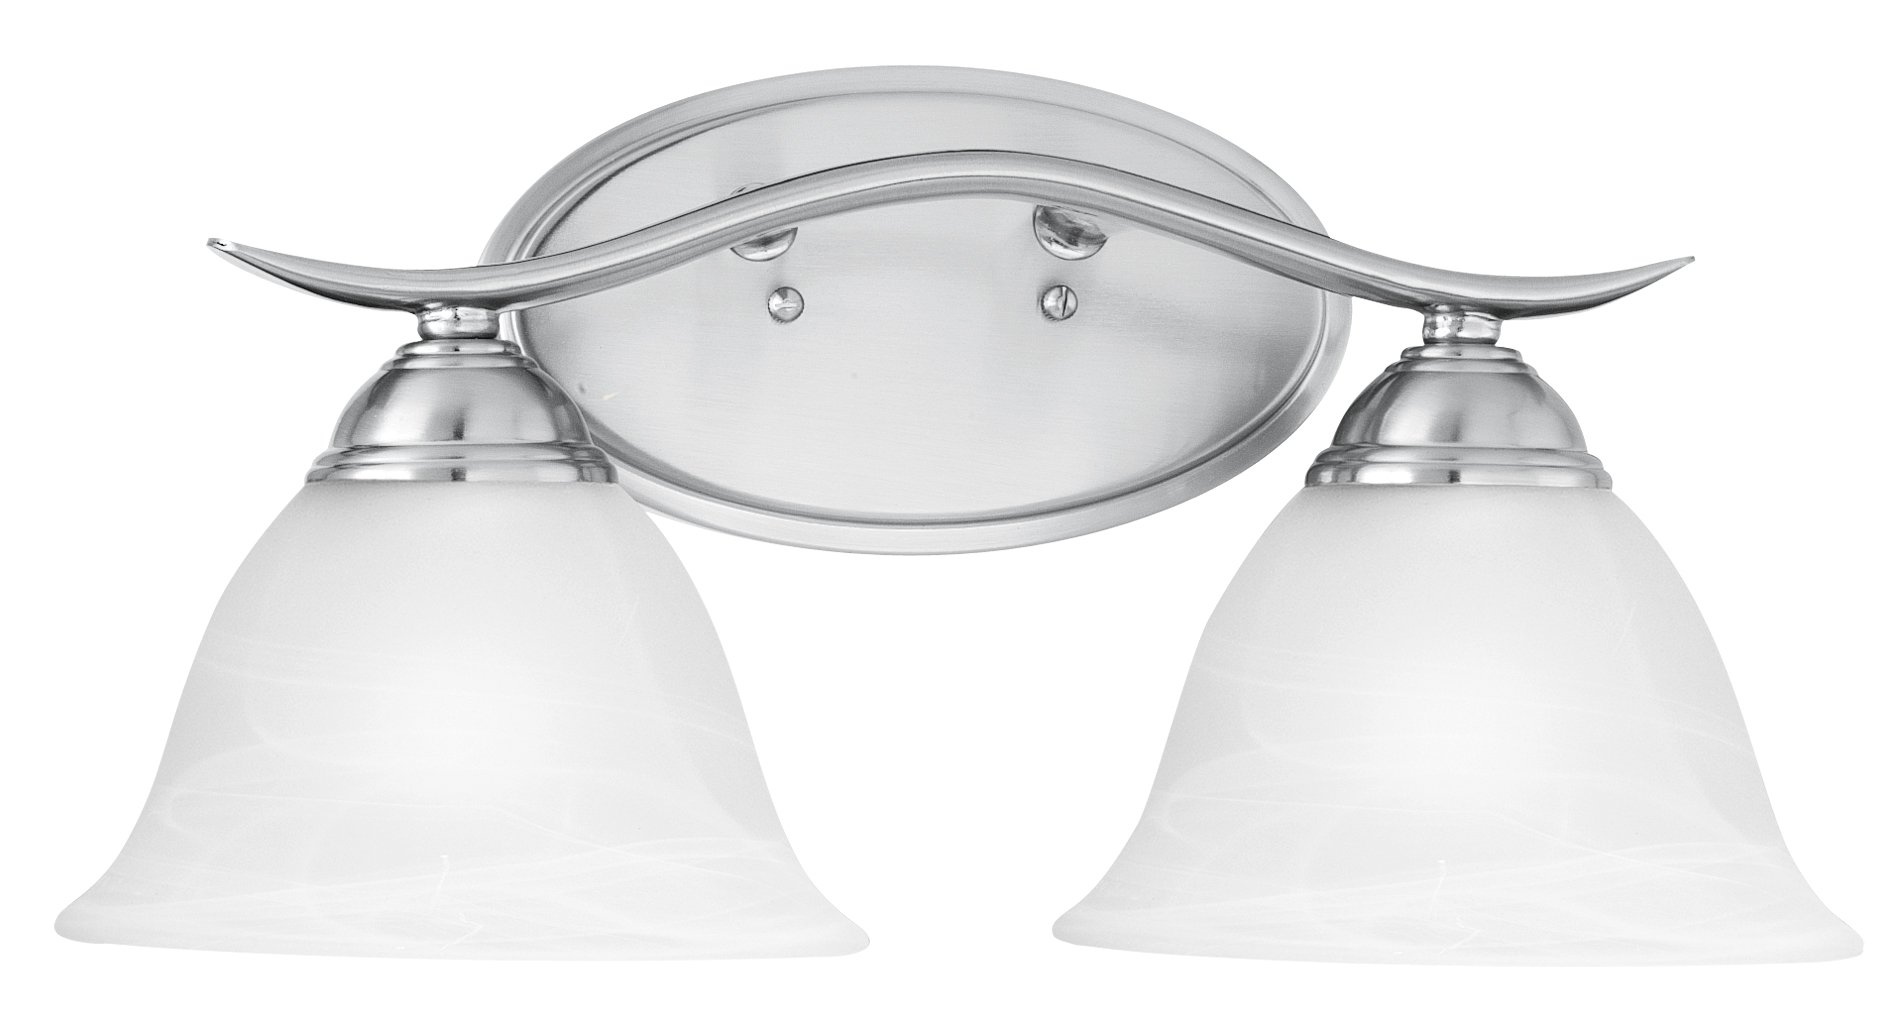 Thomas Lighting Sl7482-78 Prestige Two-Light Bath Fixture, Brushed Nickel